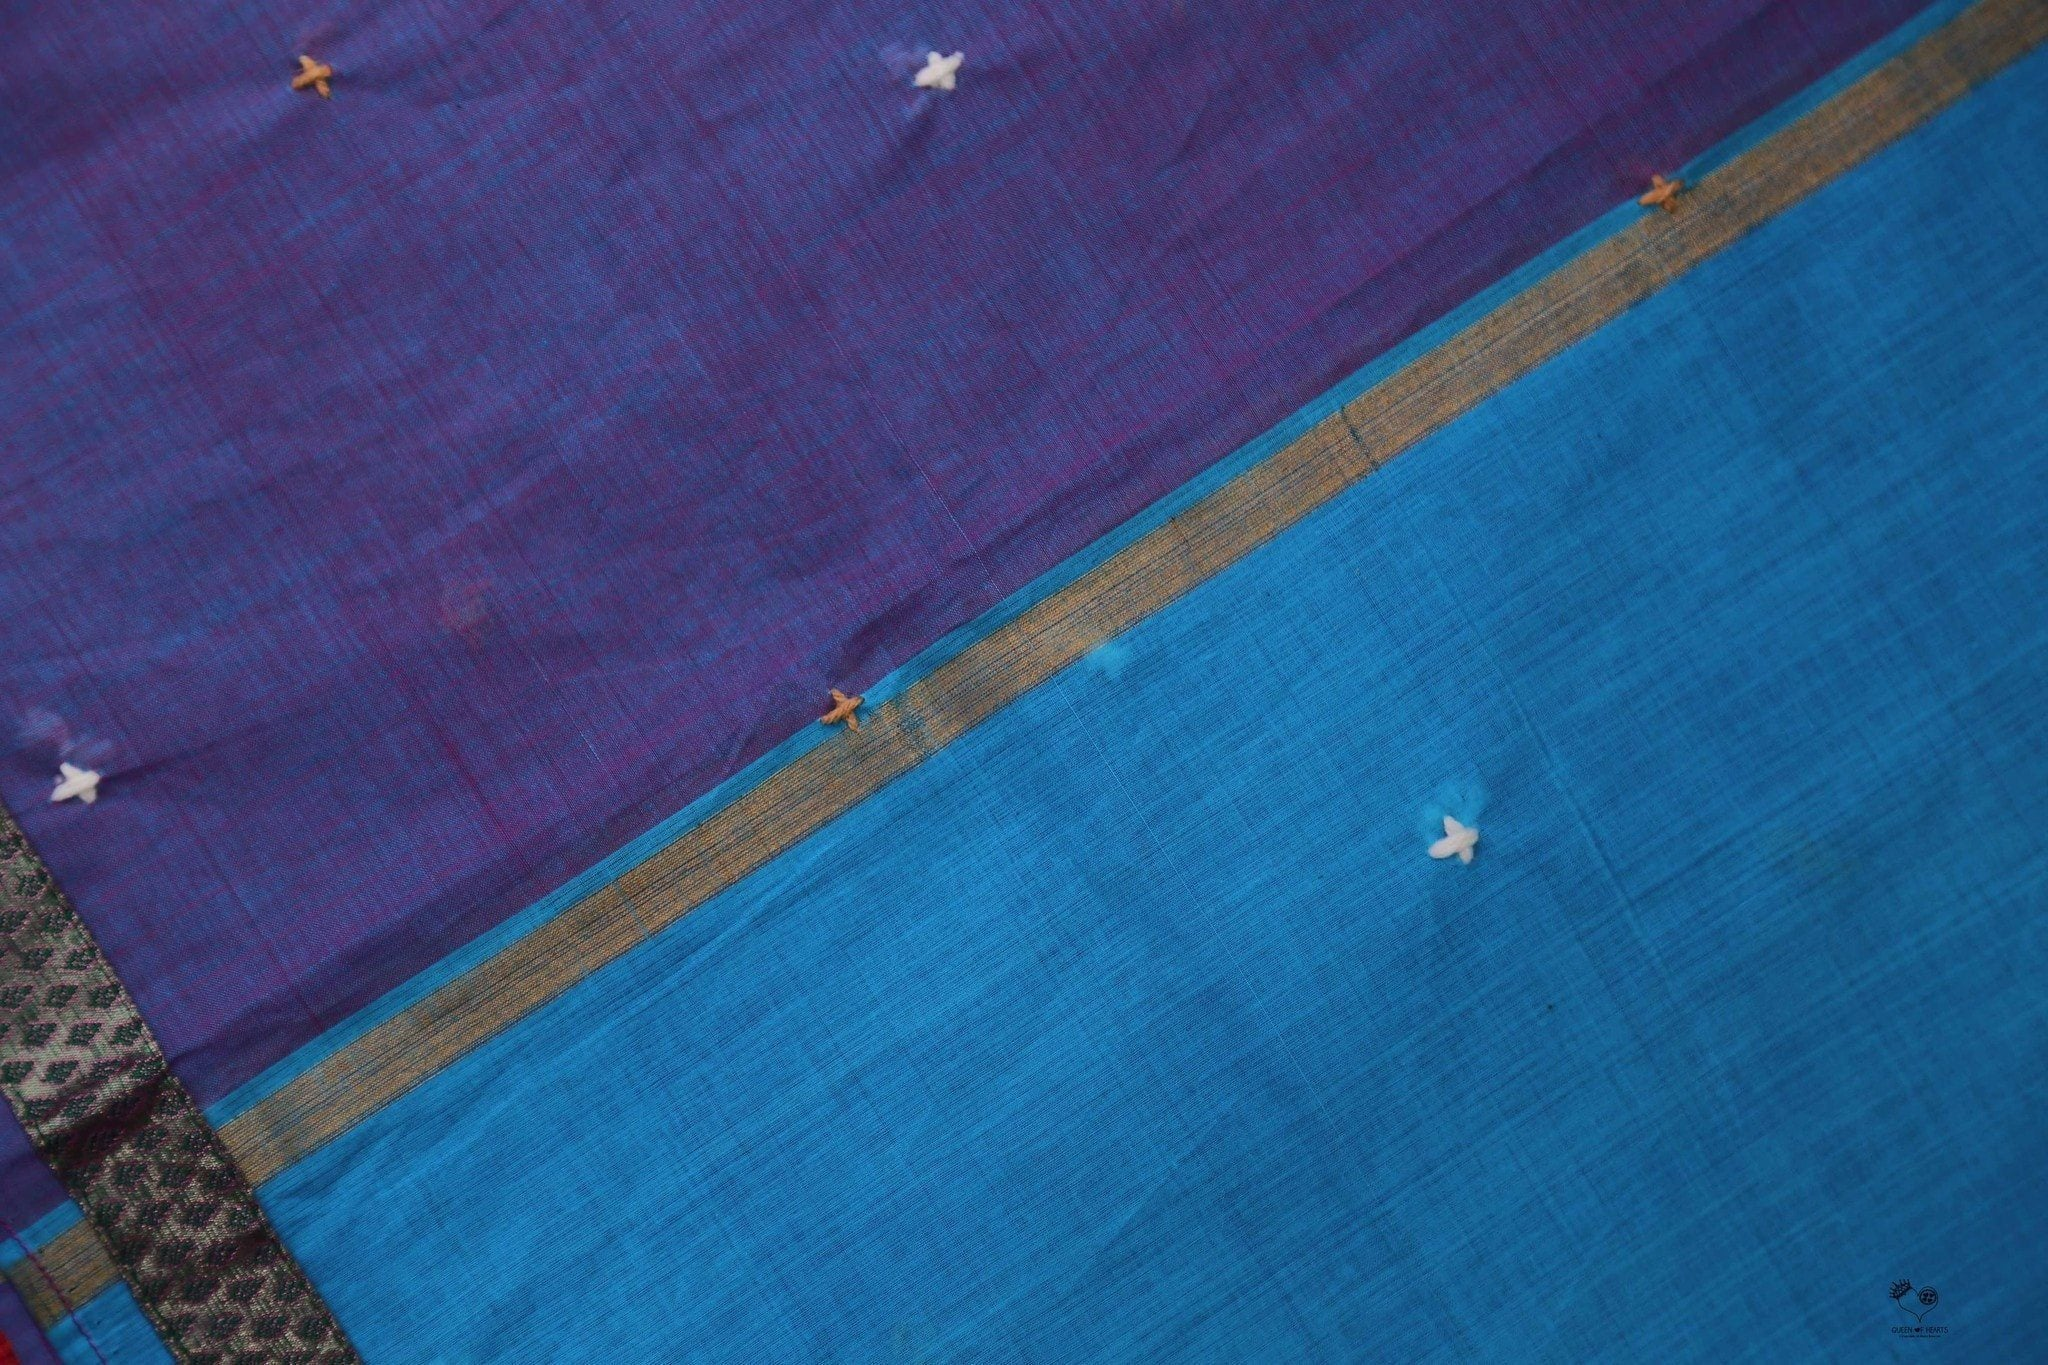 Hot Pink Purple Kanjivaram Cotton Wool Phool Saree